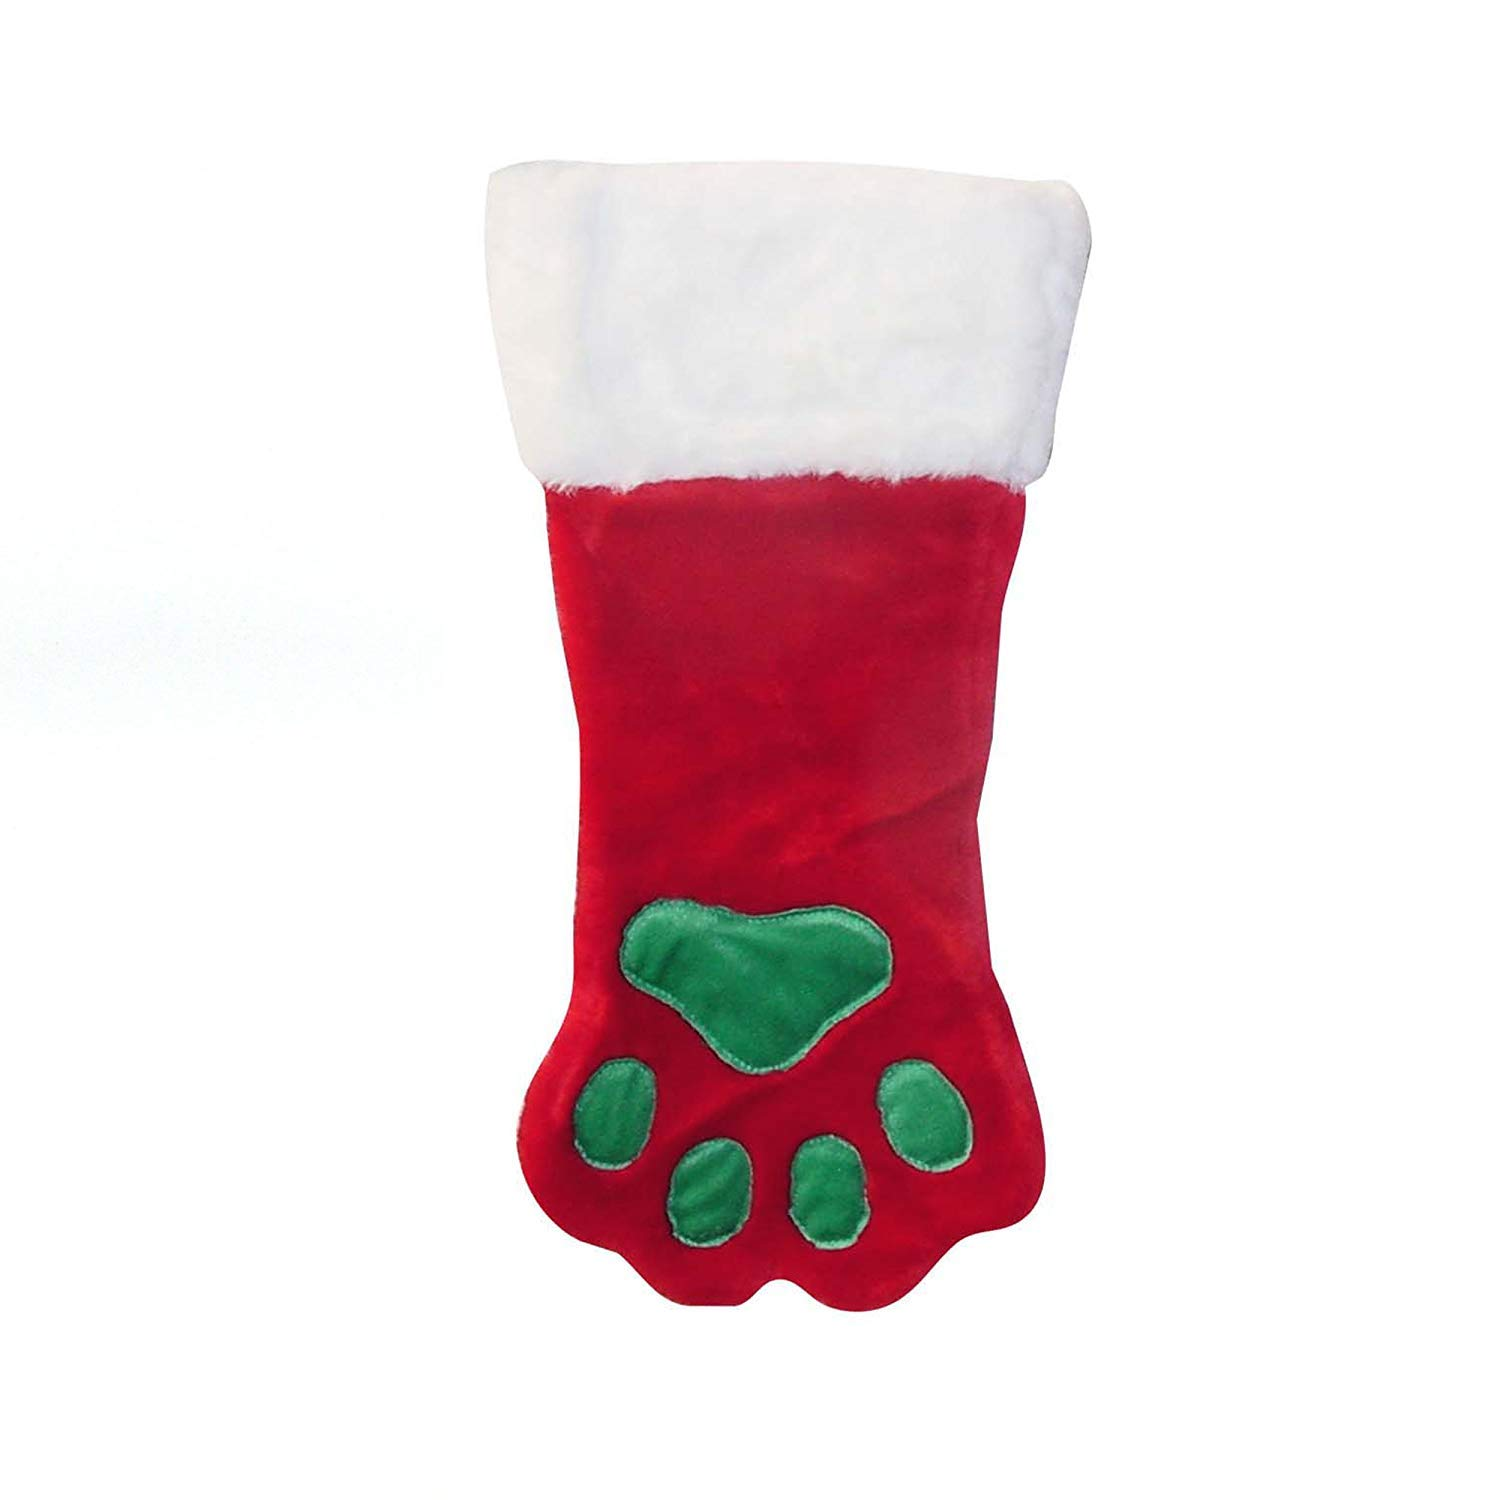 Outward Hound Xmas Stocking Paw, Large